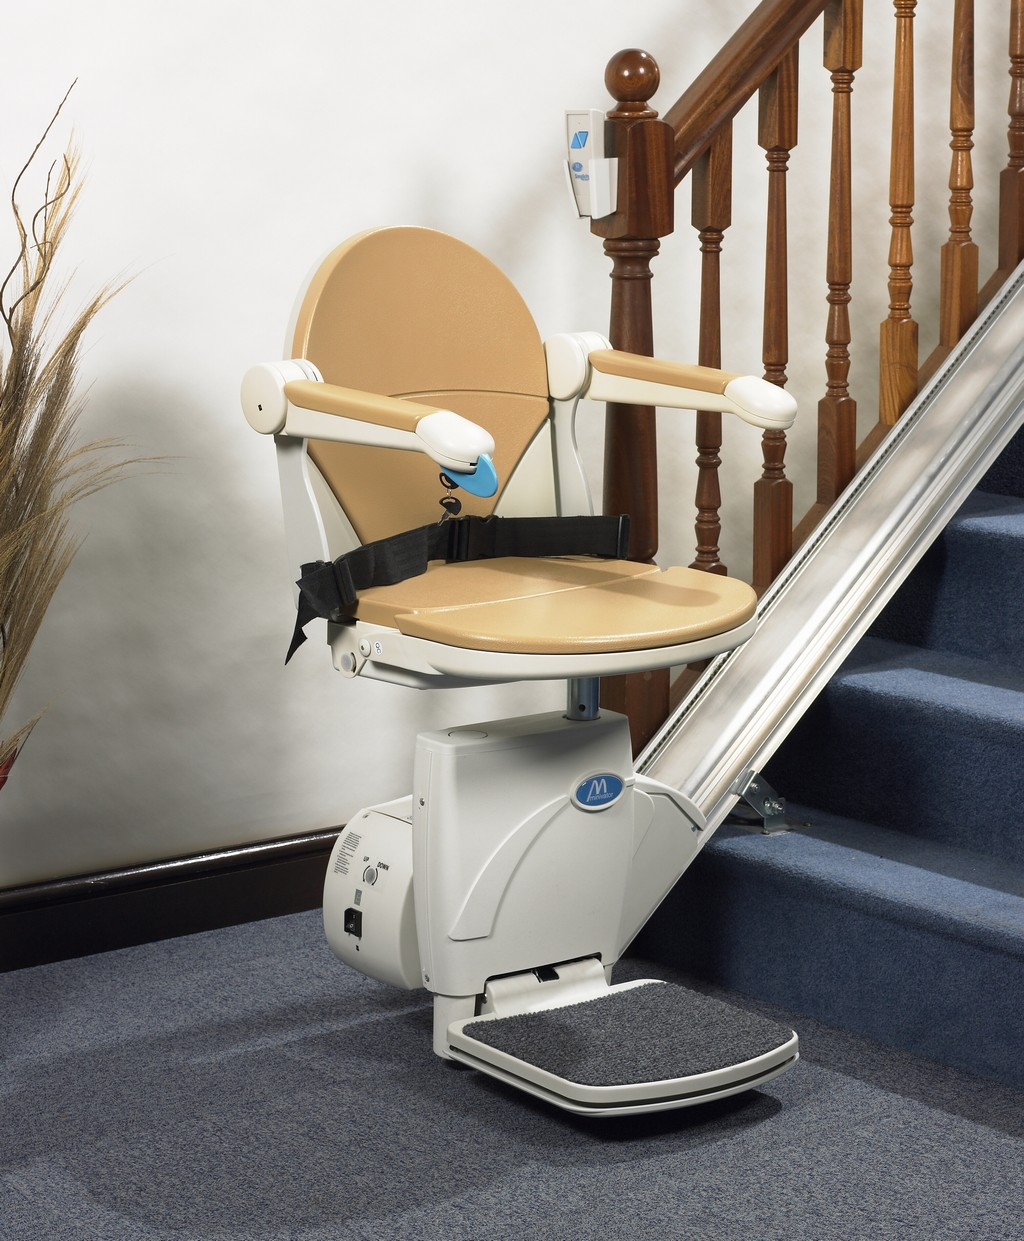 stairlift chairs, do it yourself stair lift, stair lift manufacturers, pennsylvania stair lifts